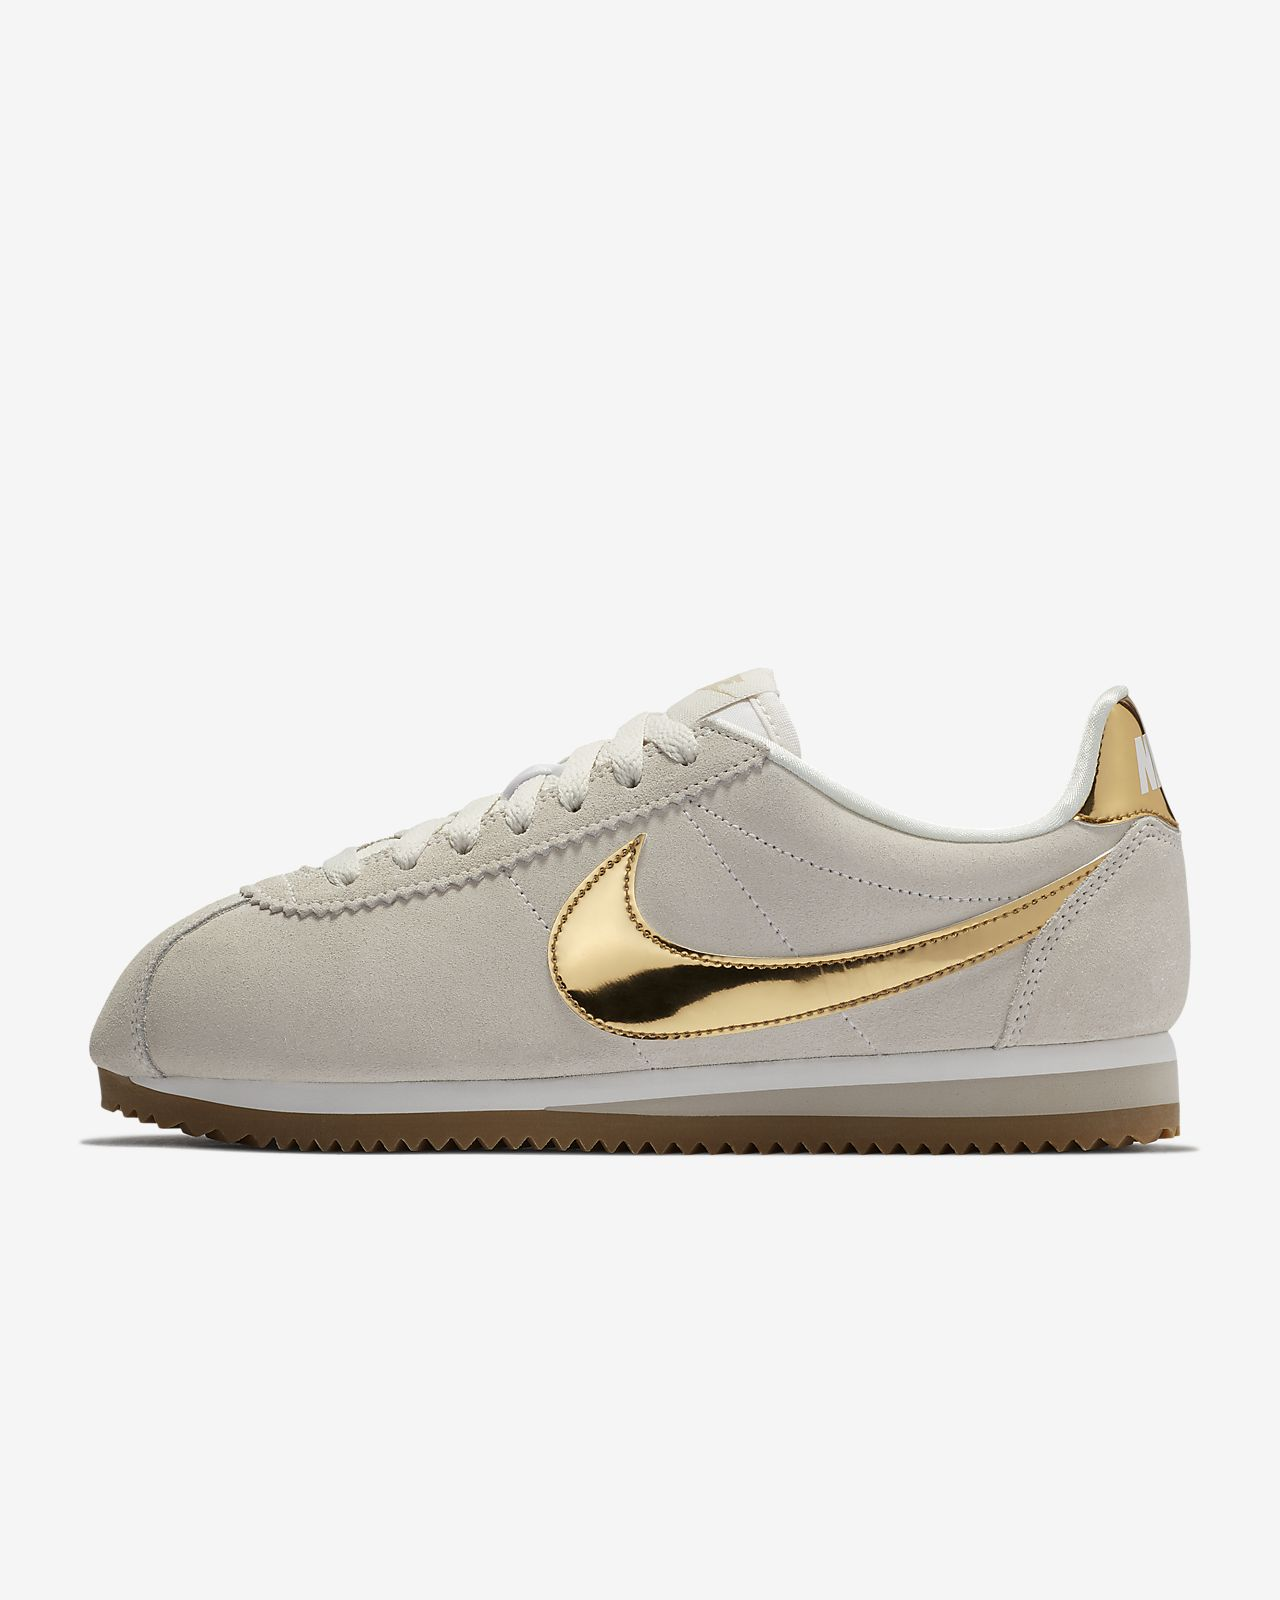 Nike Cortez Running Shoe Review